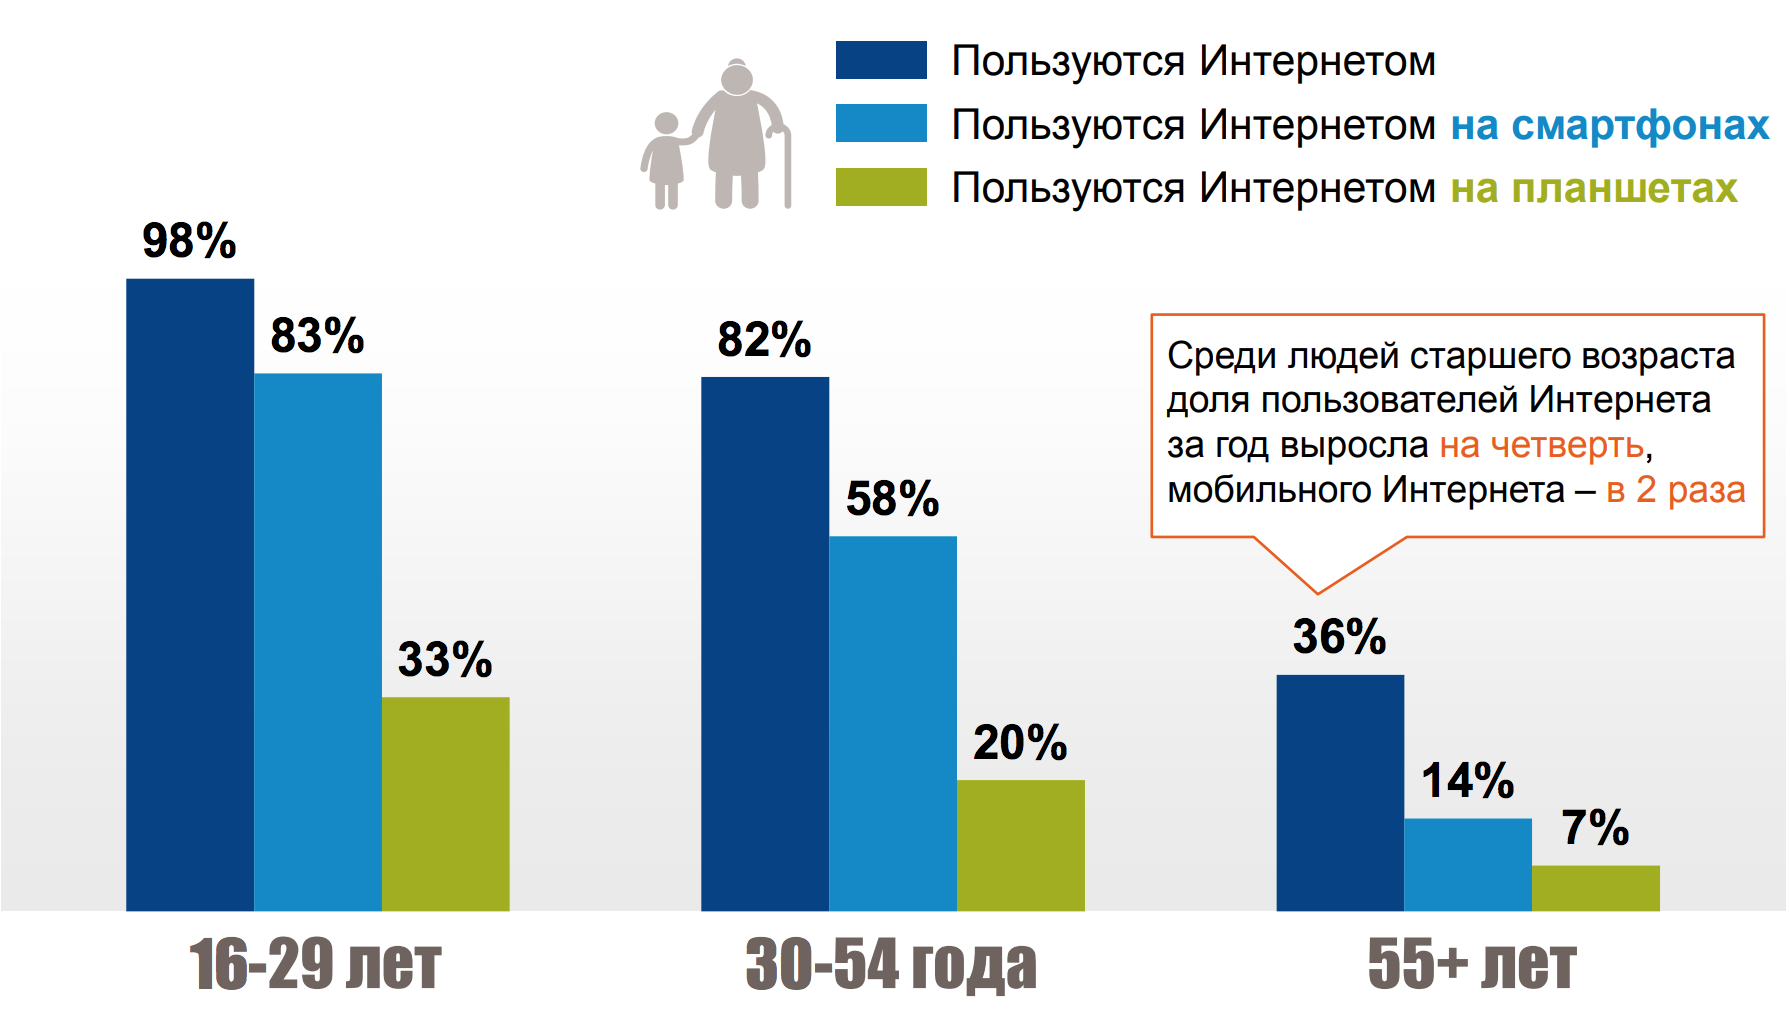 http://trendissues.com/wp-content/uploads/2018/01/Internet-users-in-Russia_1.png